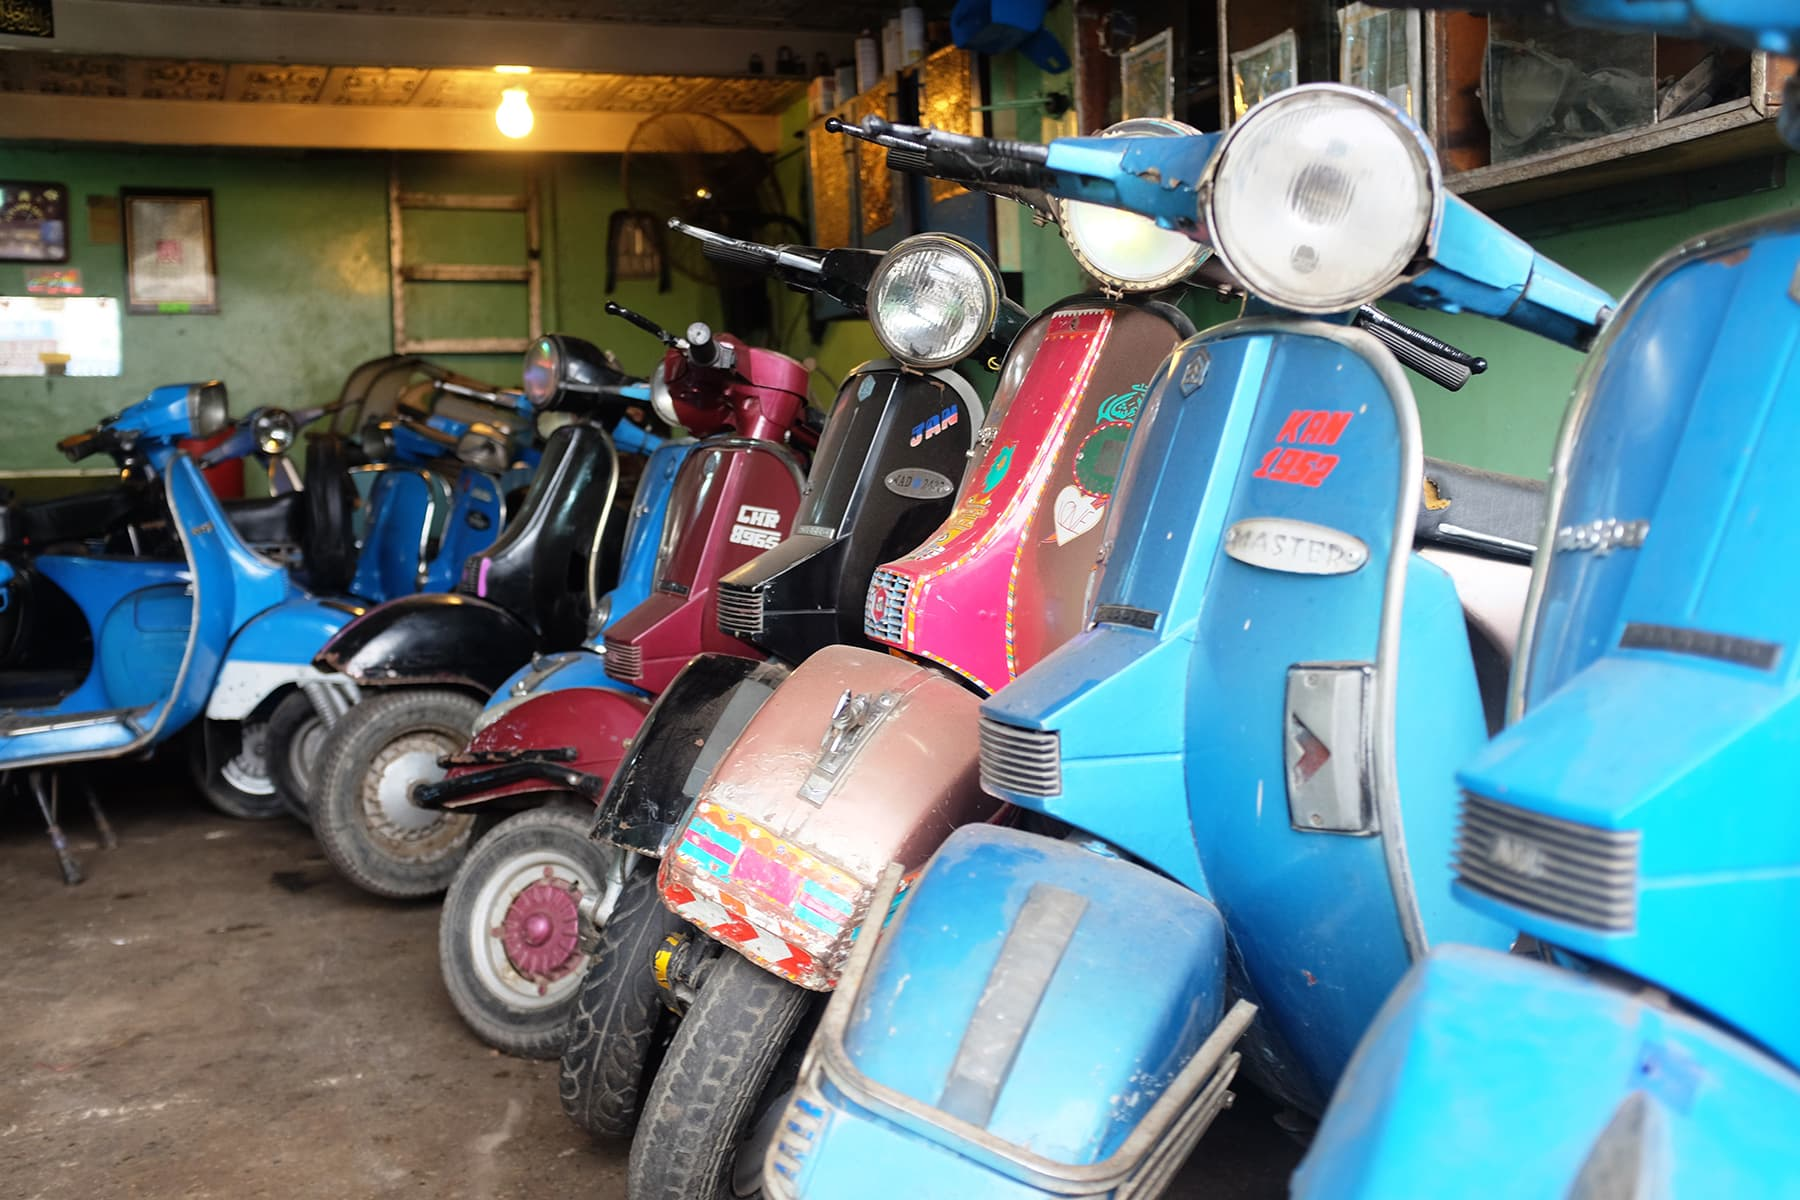 Abdullah has one of the largest collection of Vespas in the city.